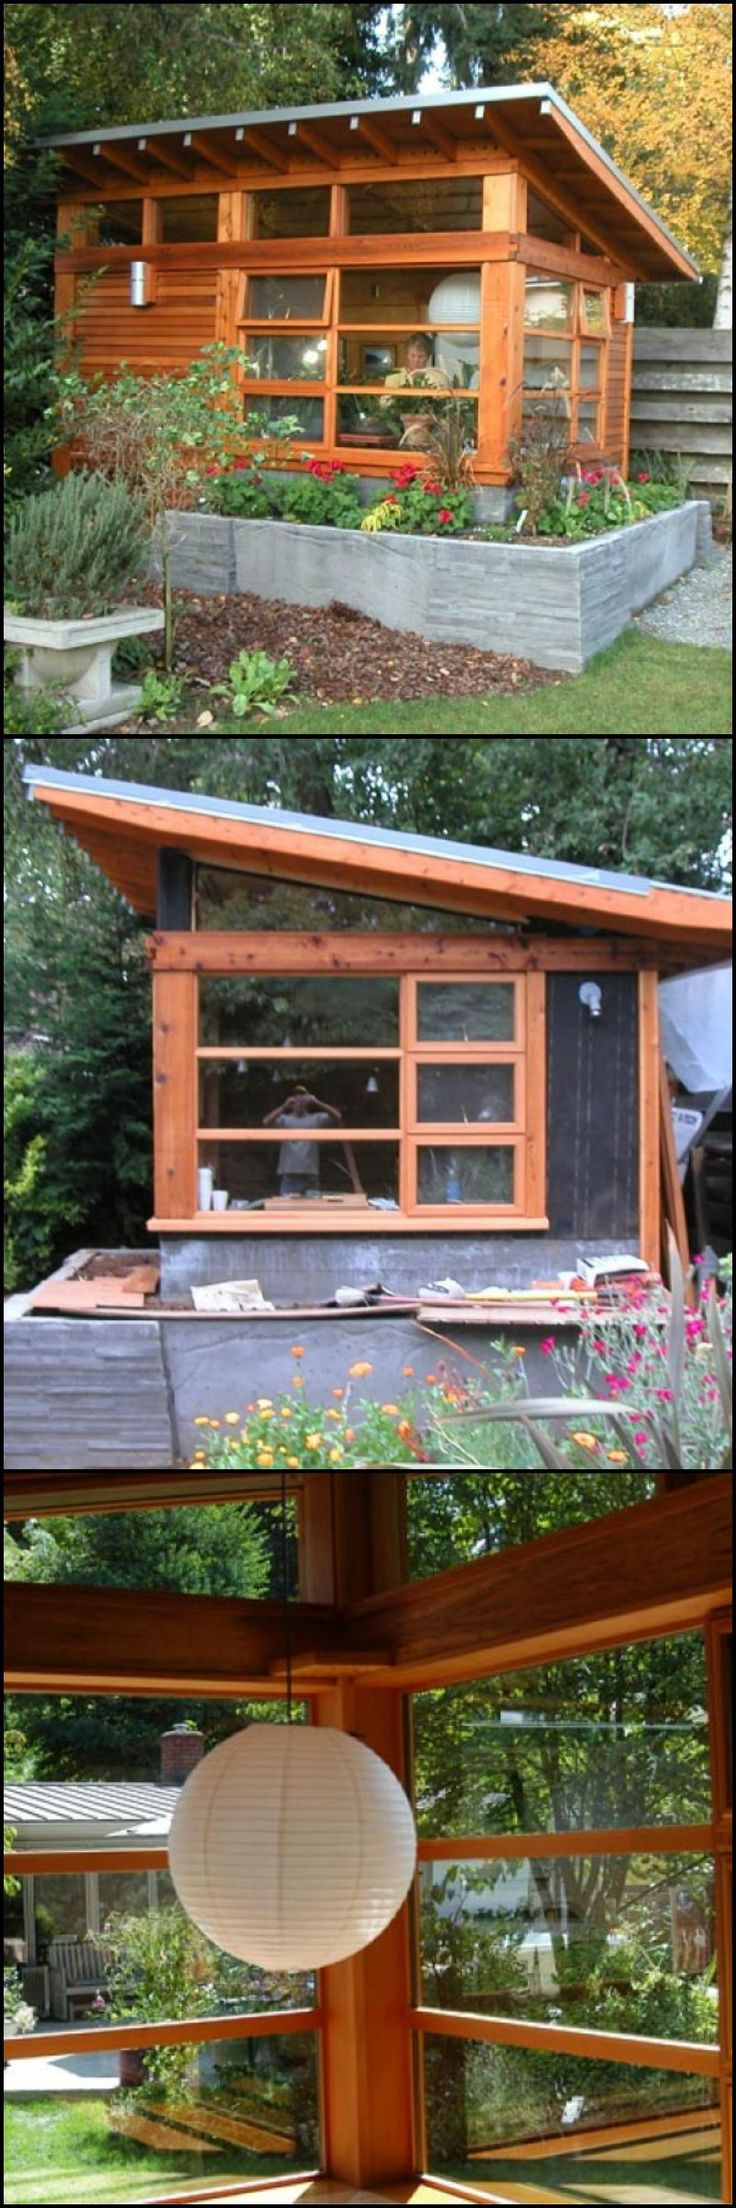 ^ 1000+ ideas about Backyard Studio on Pinterest Studio shed ...